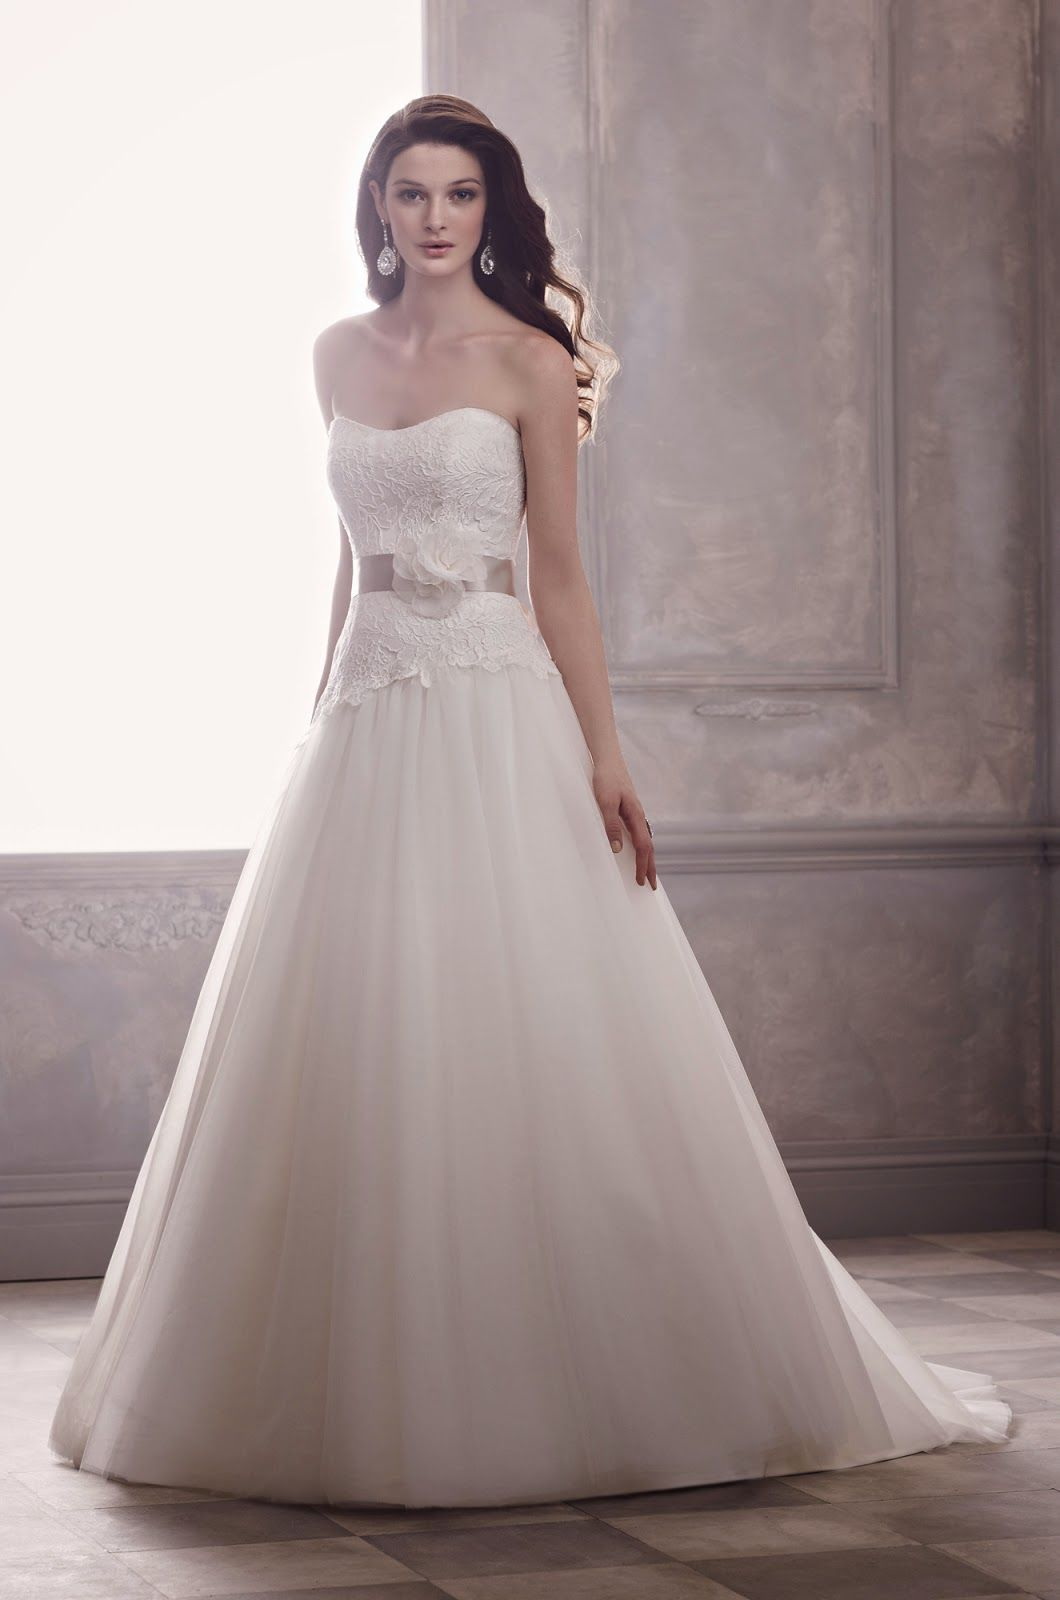 Pear Shaped Body Wedding Dress